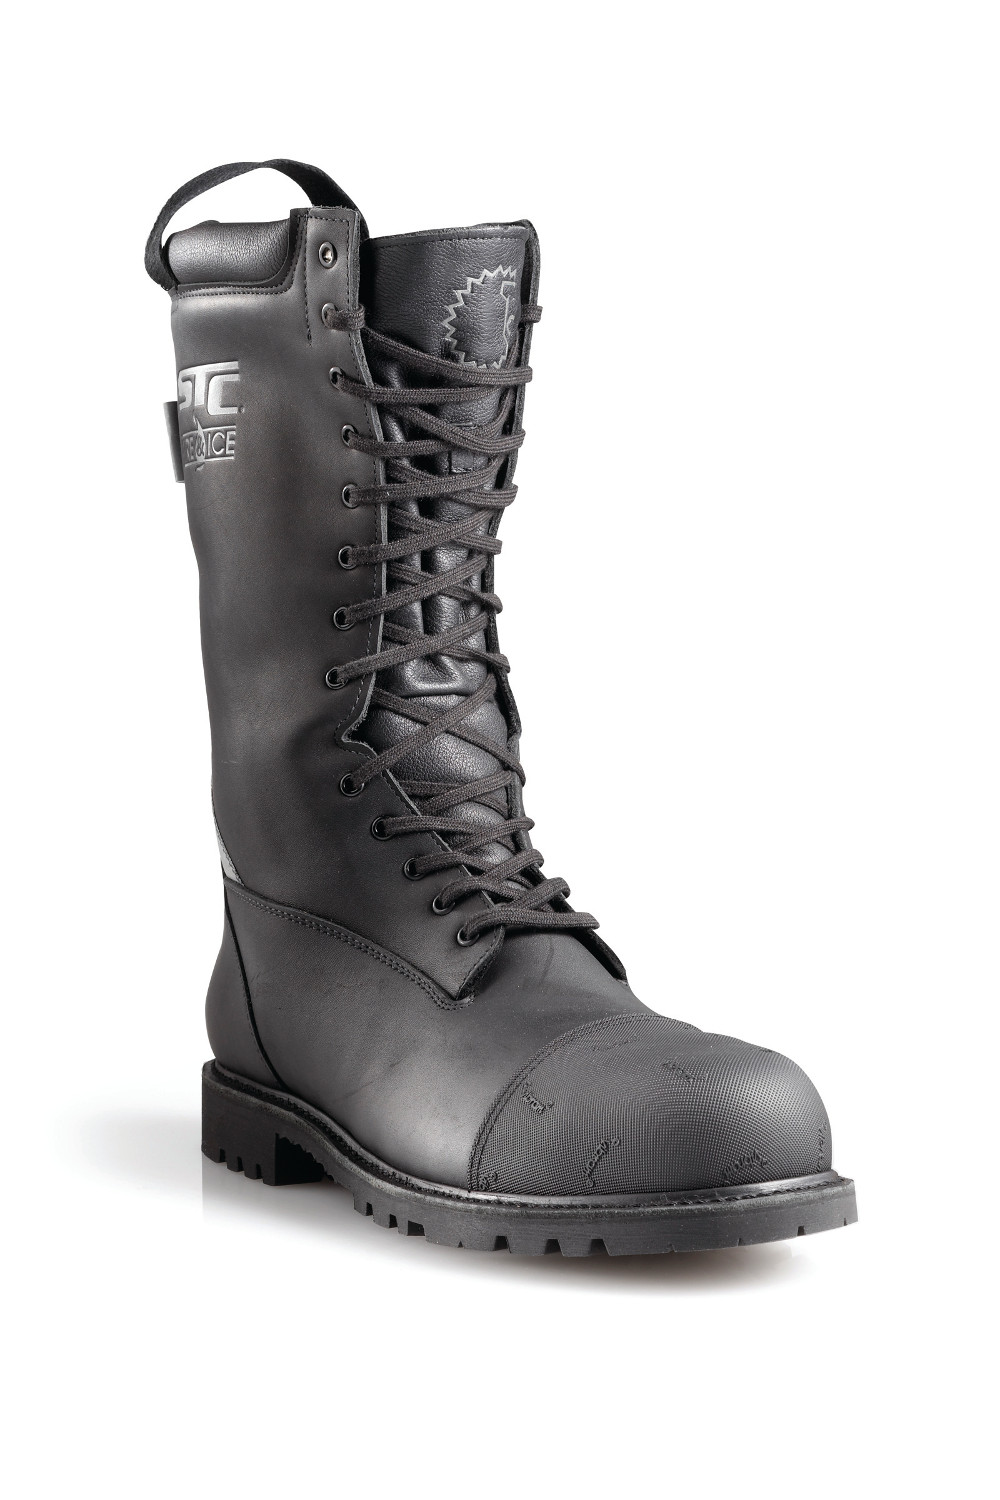 ZIP-LACE FIREFIGHTING BOOTS WITH SUPERIOR TRACTION AND FLEXIBILITY